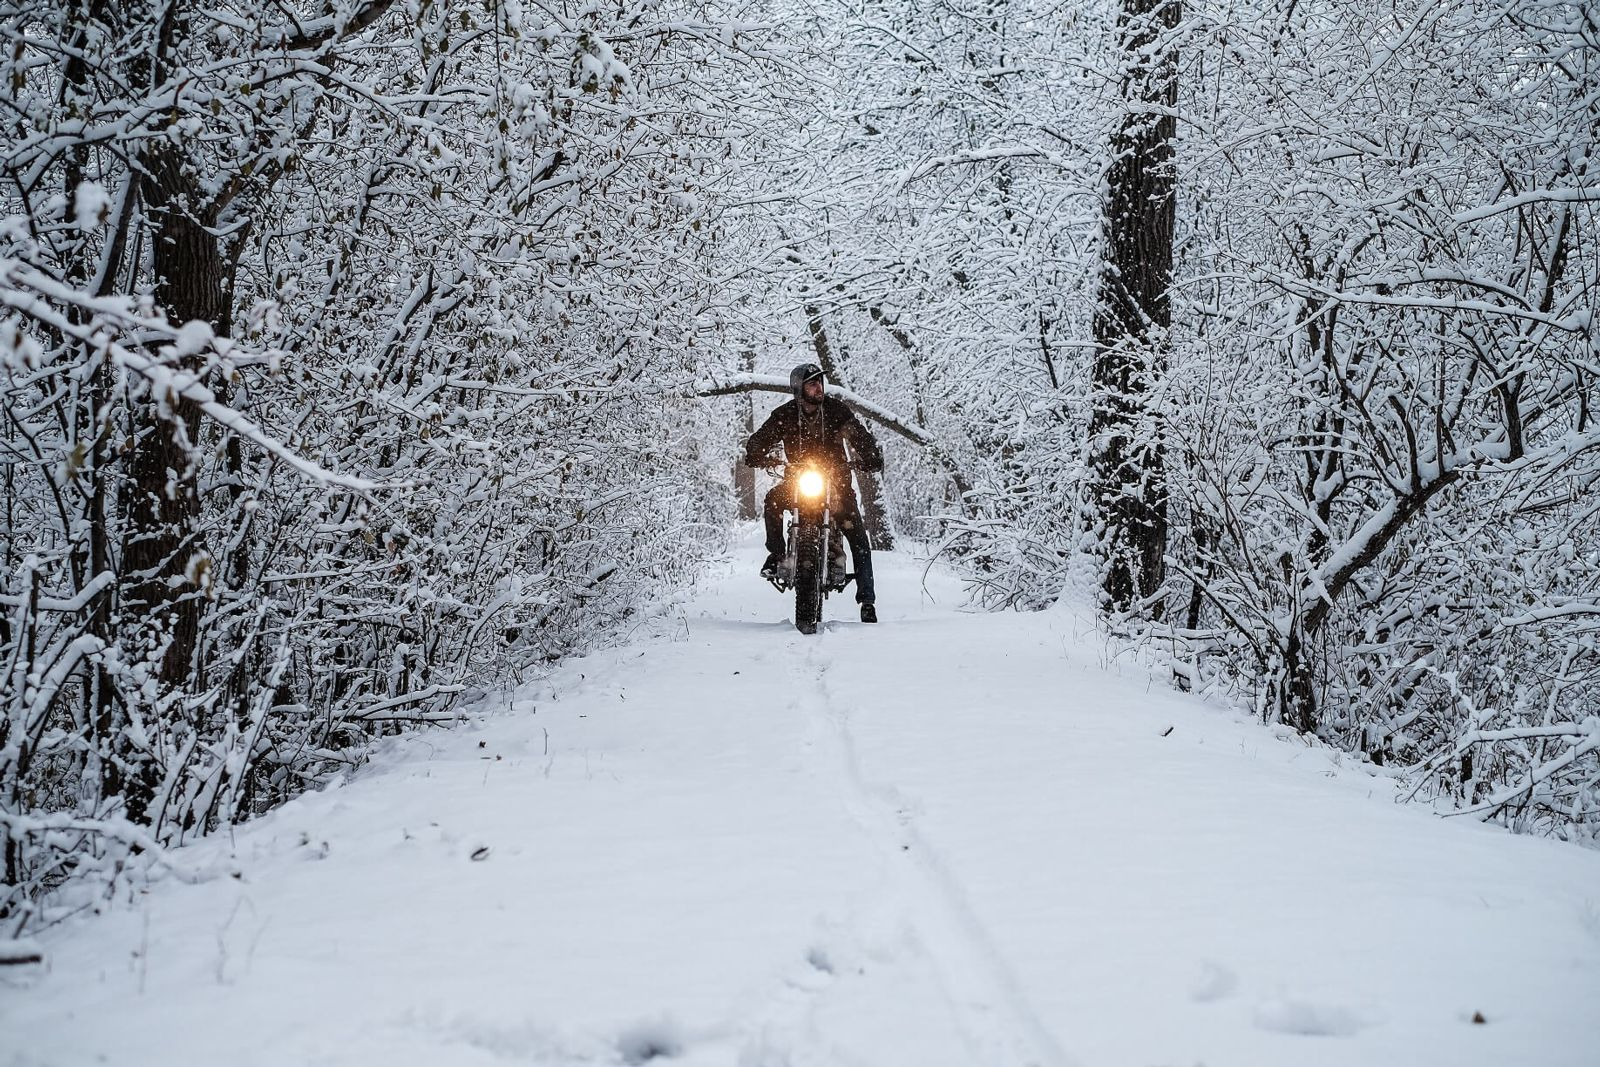 Motorcyclist riding bike on snowy road in the distance